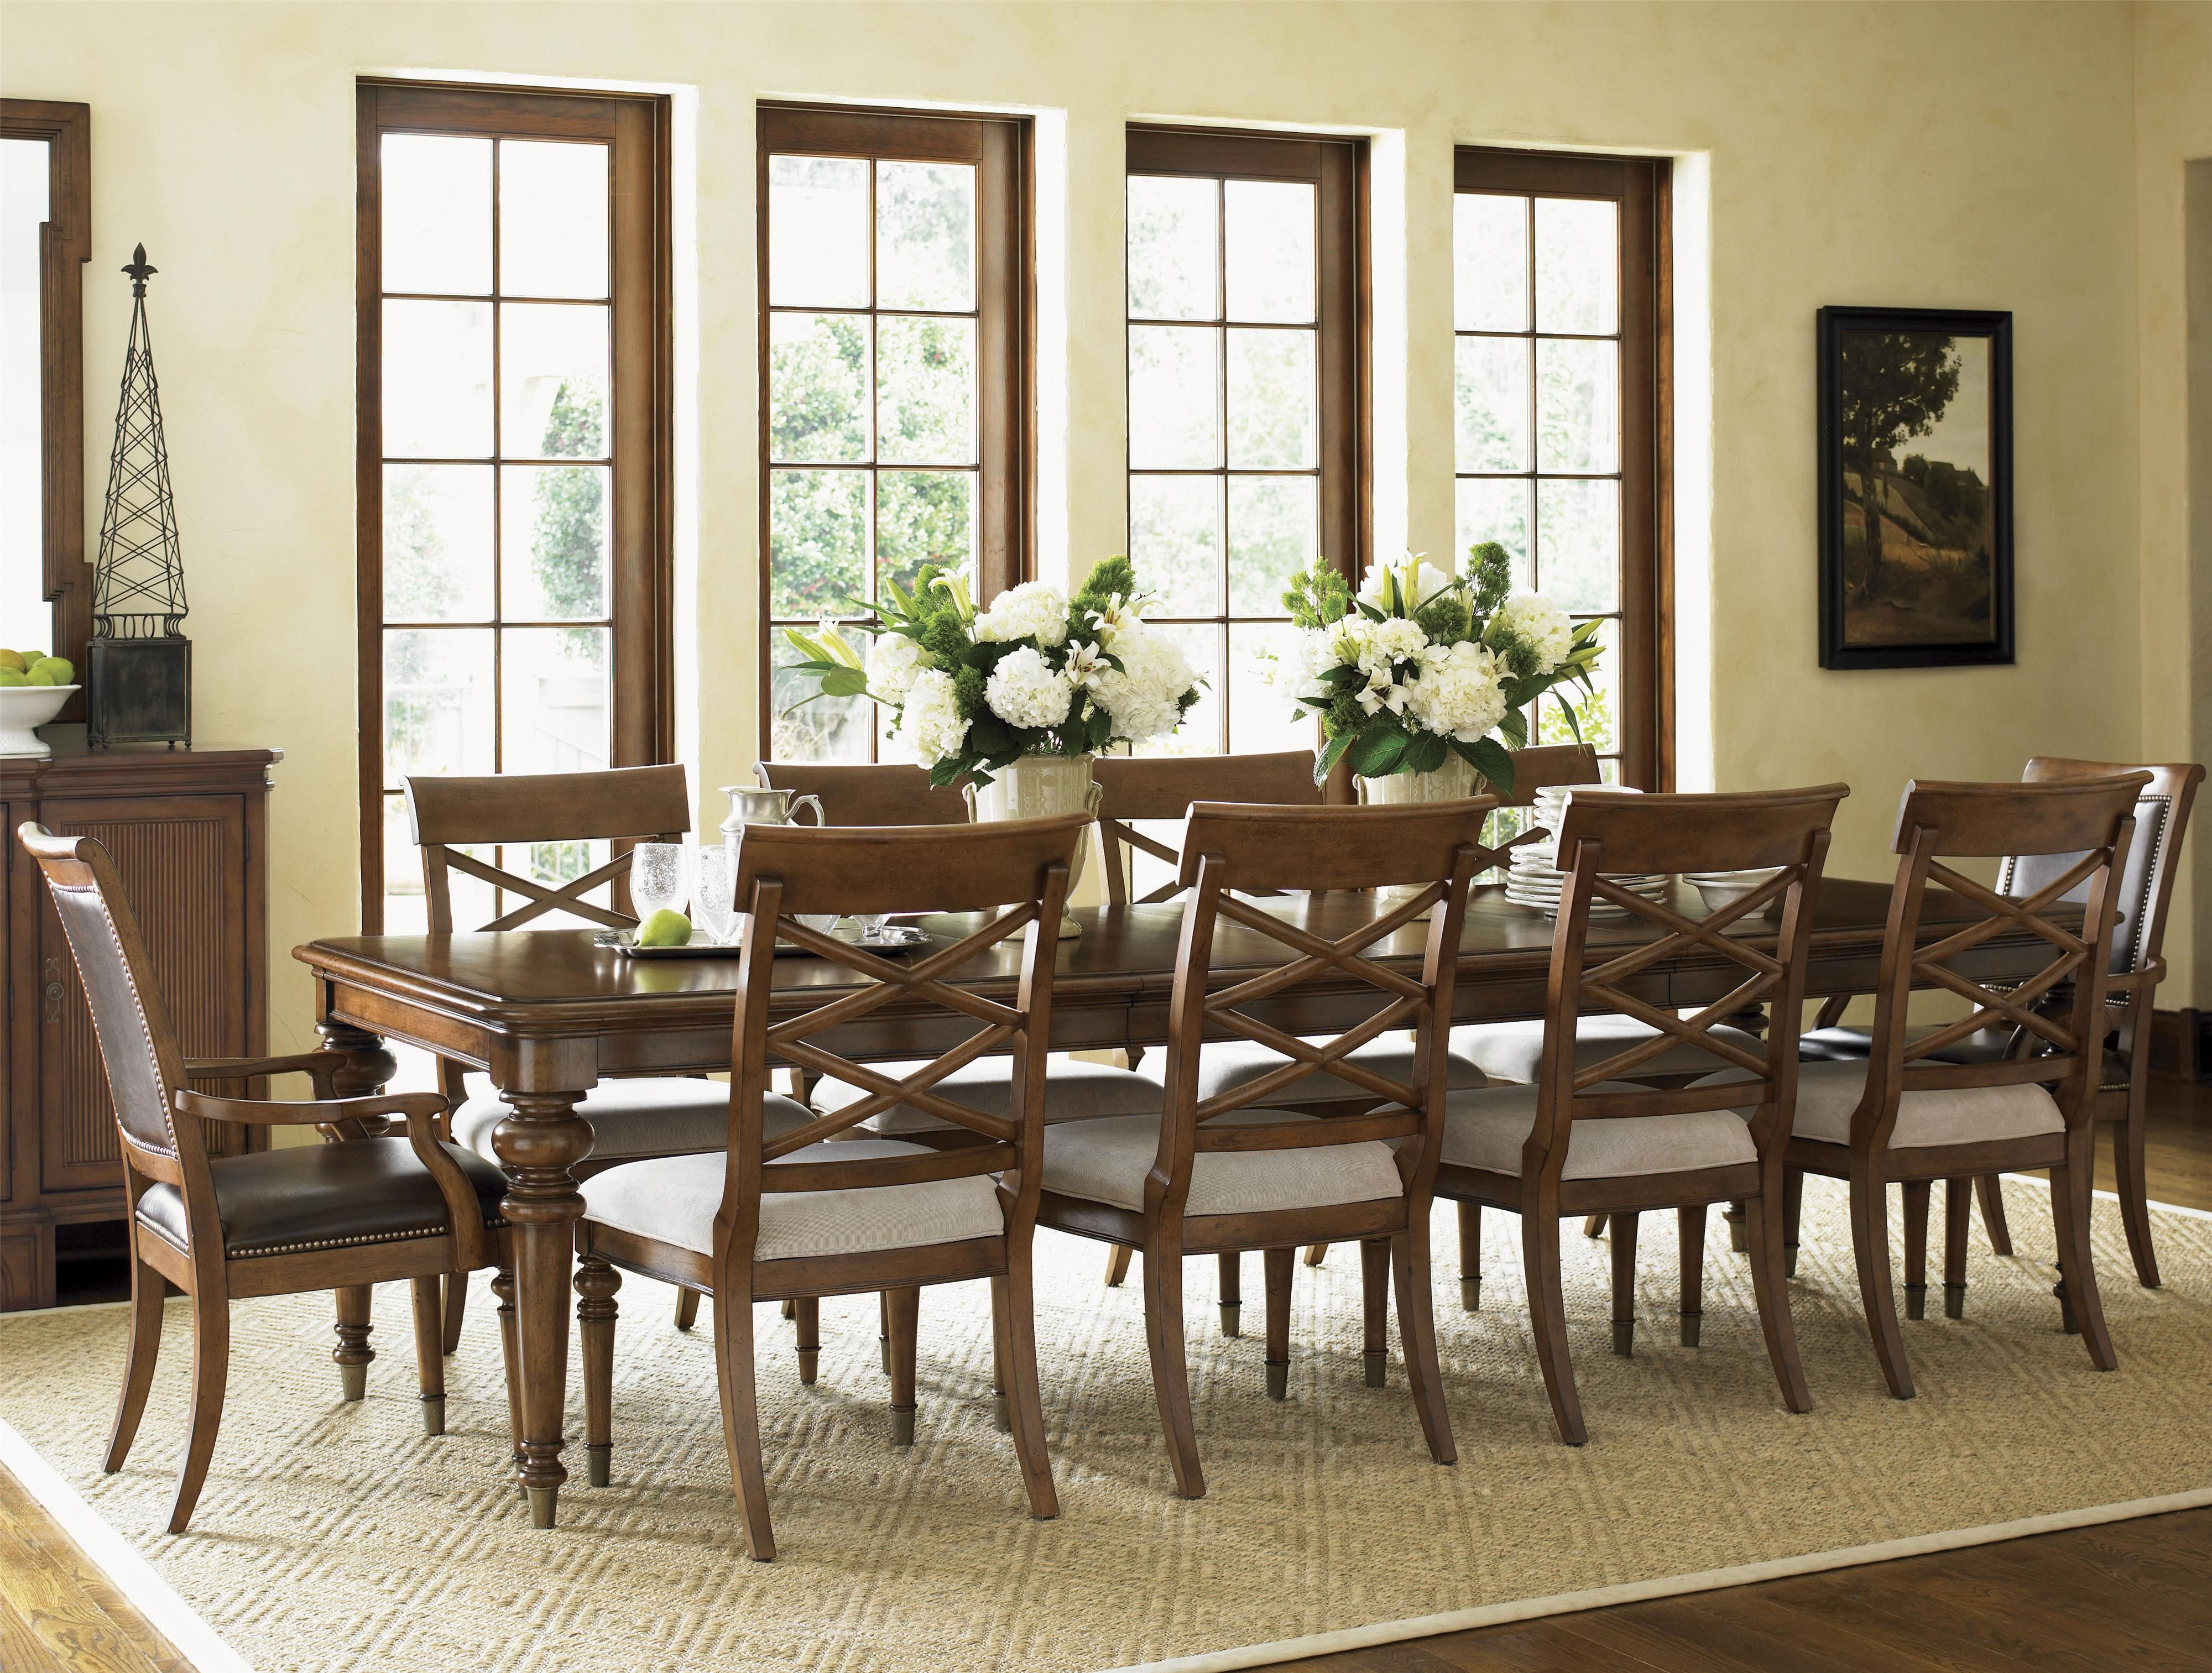 11 Piece Dining Room Set Quails And Home On Pinterest